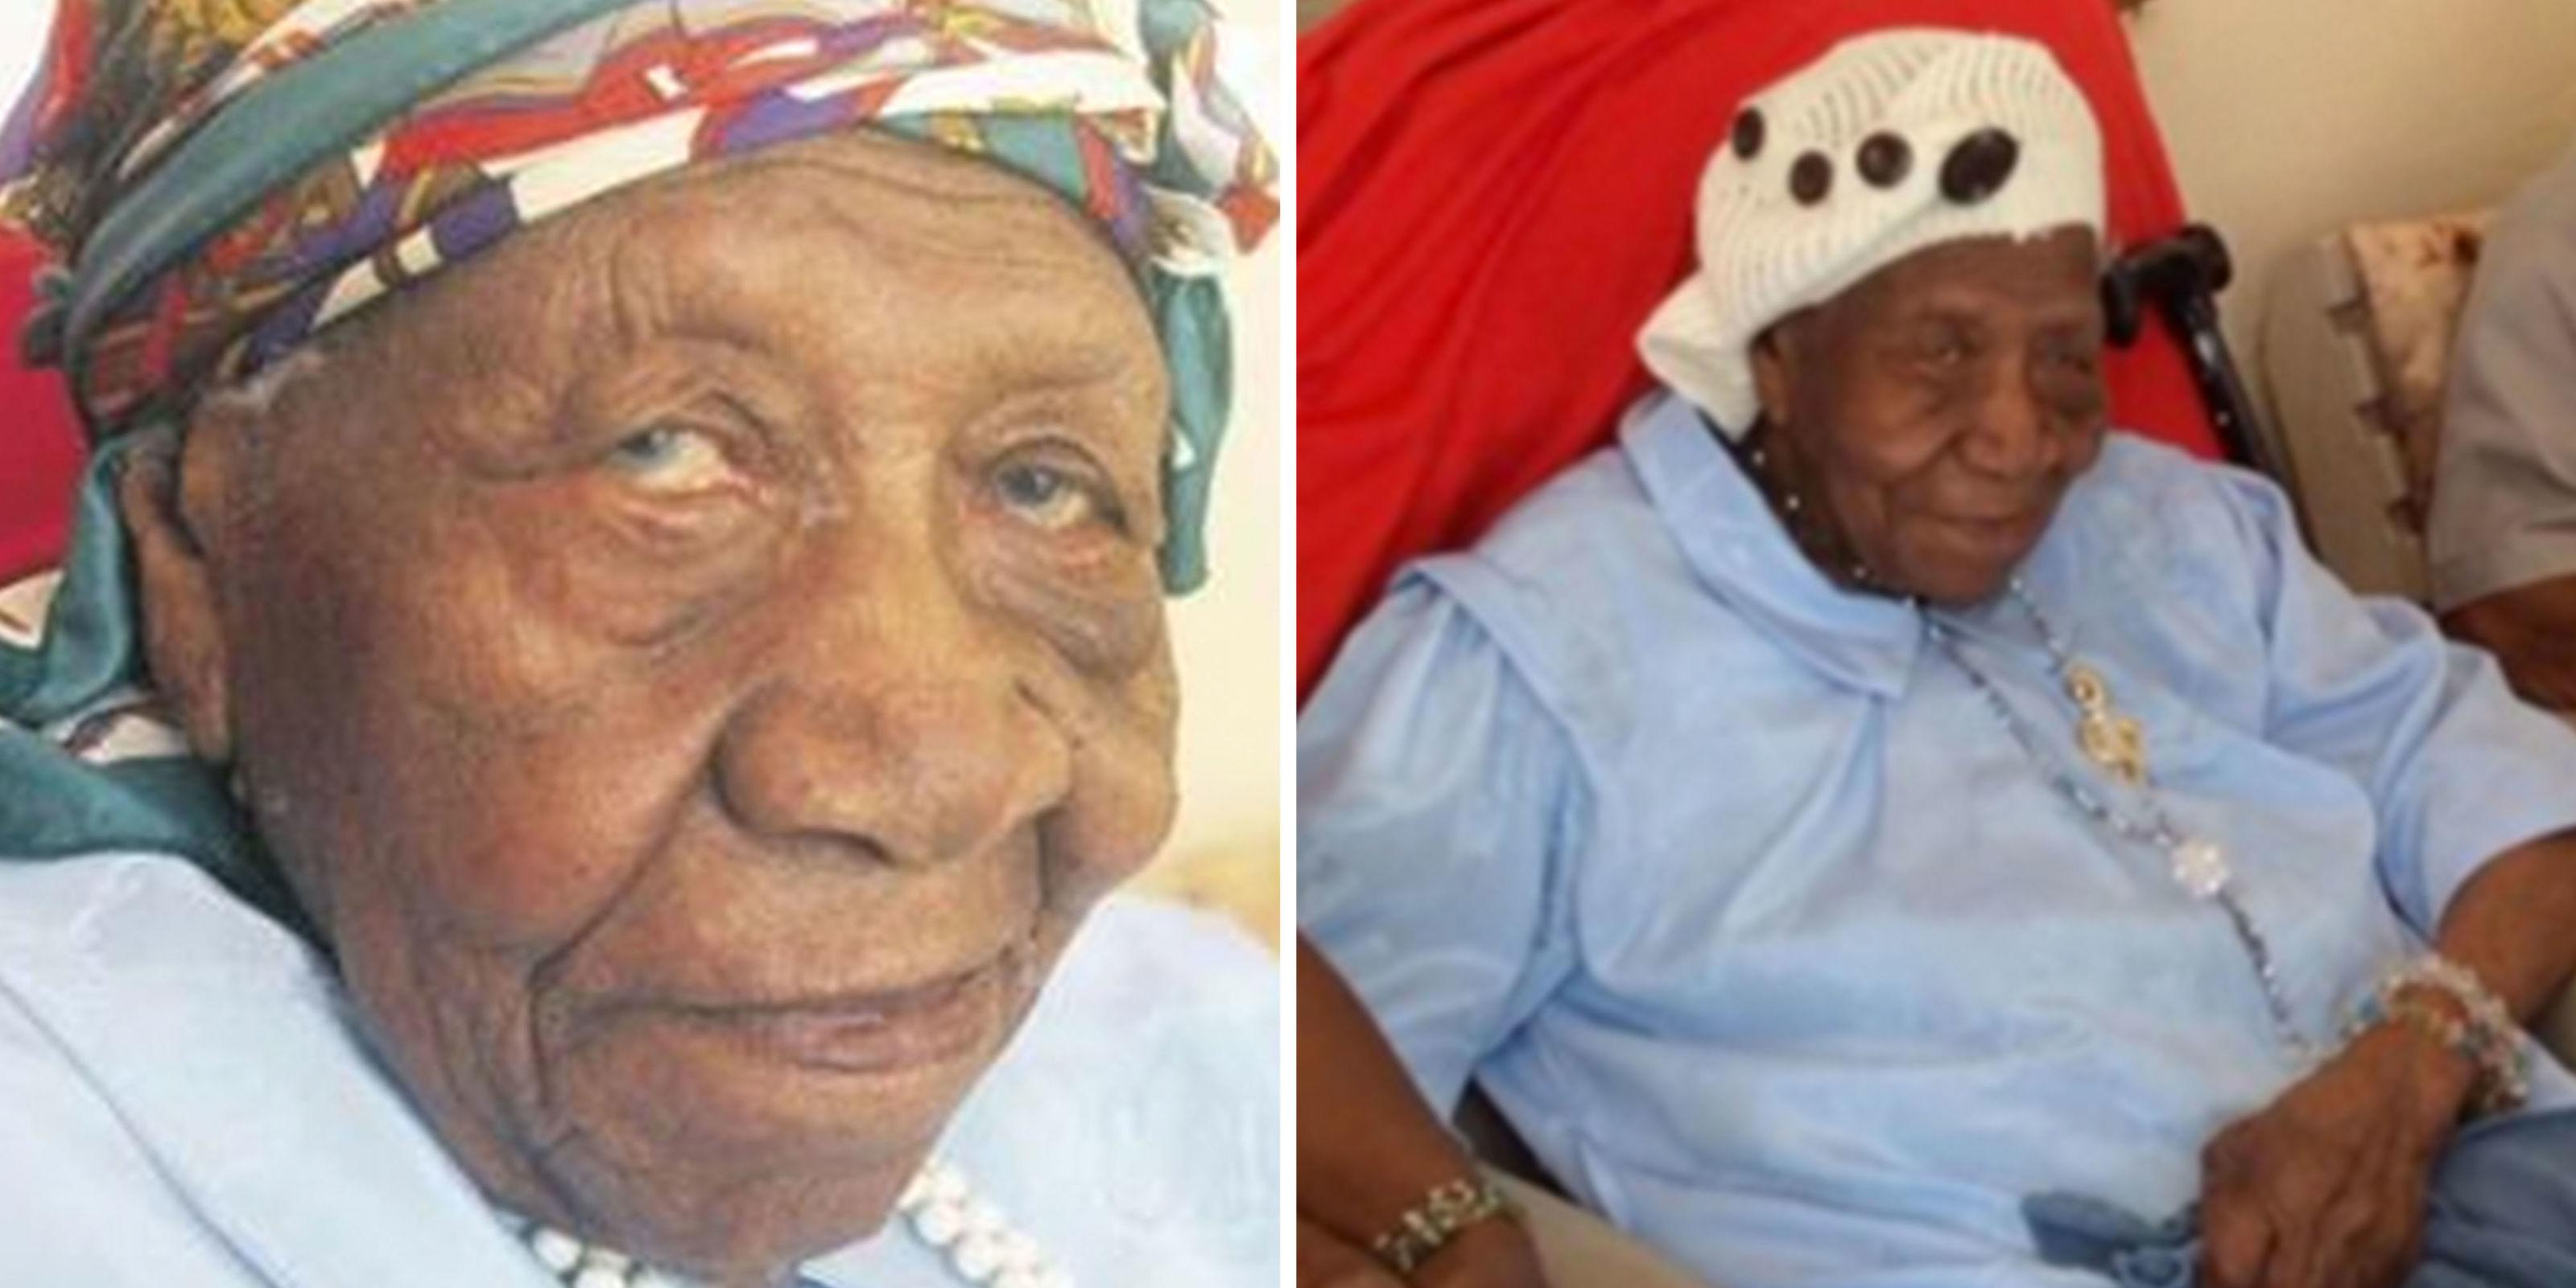 The Newest 'World's Oldest Person' Shares Her Secrets for ...